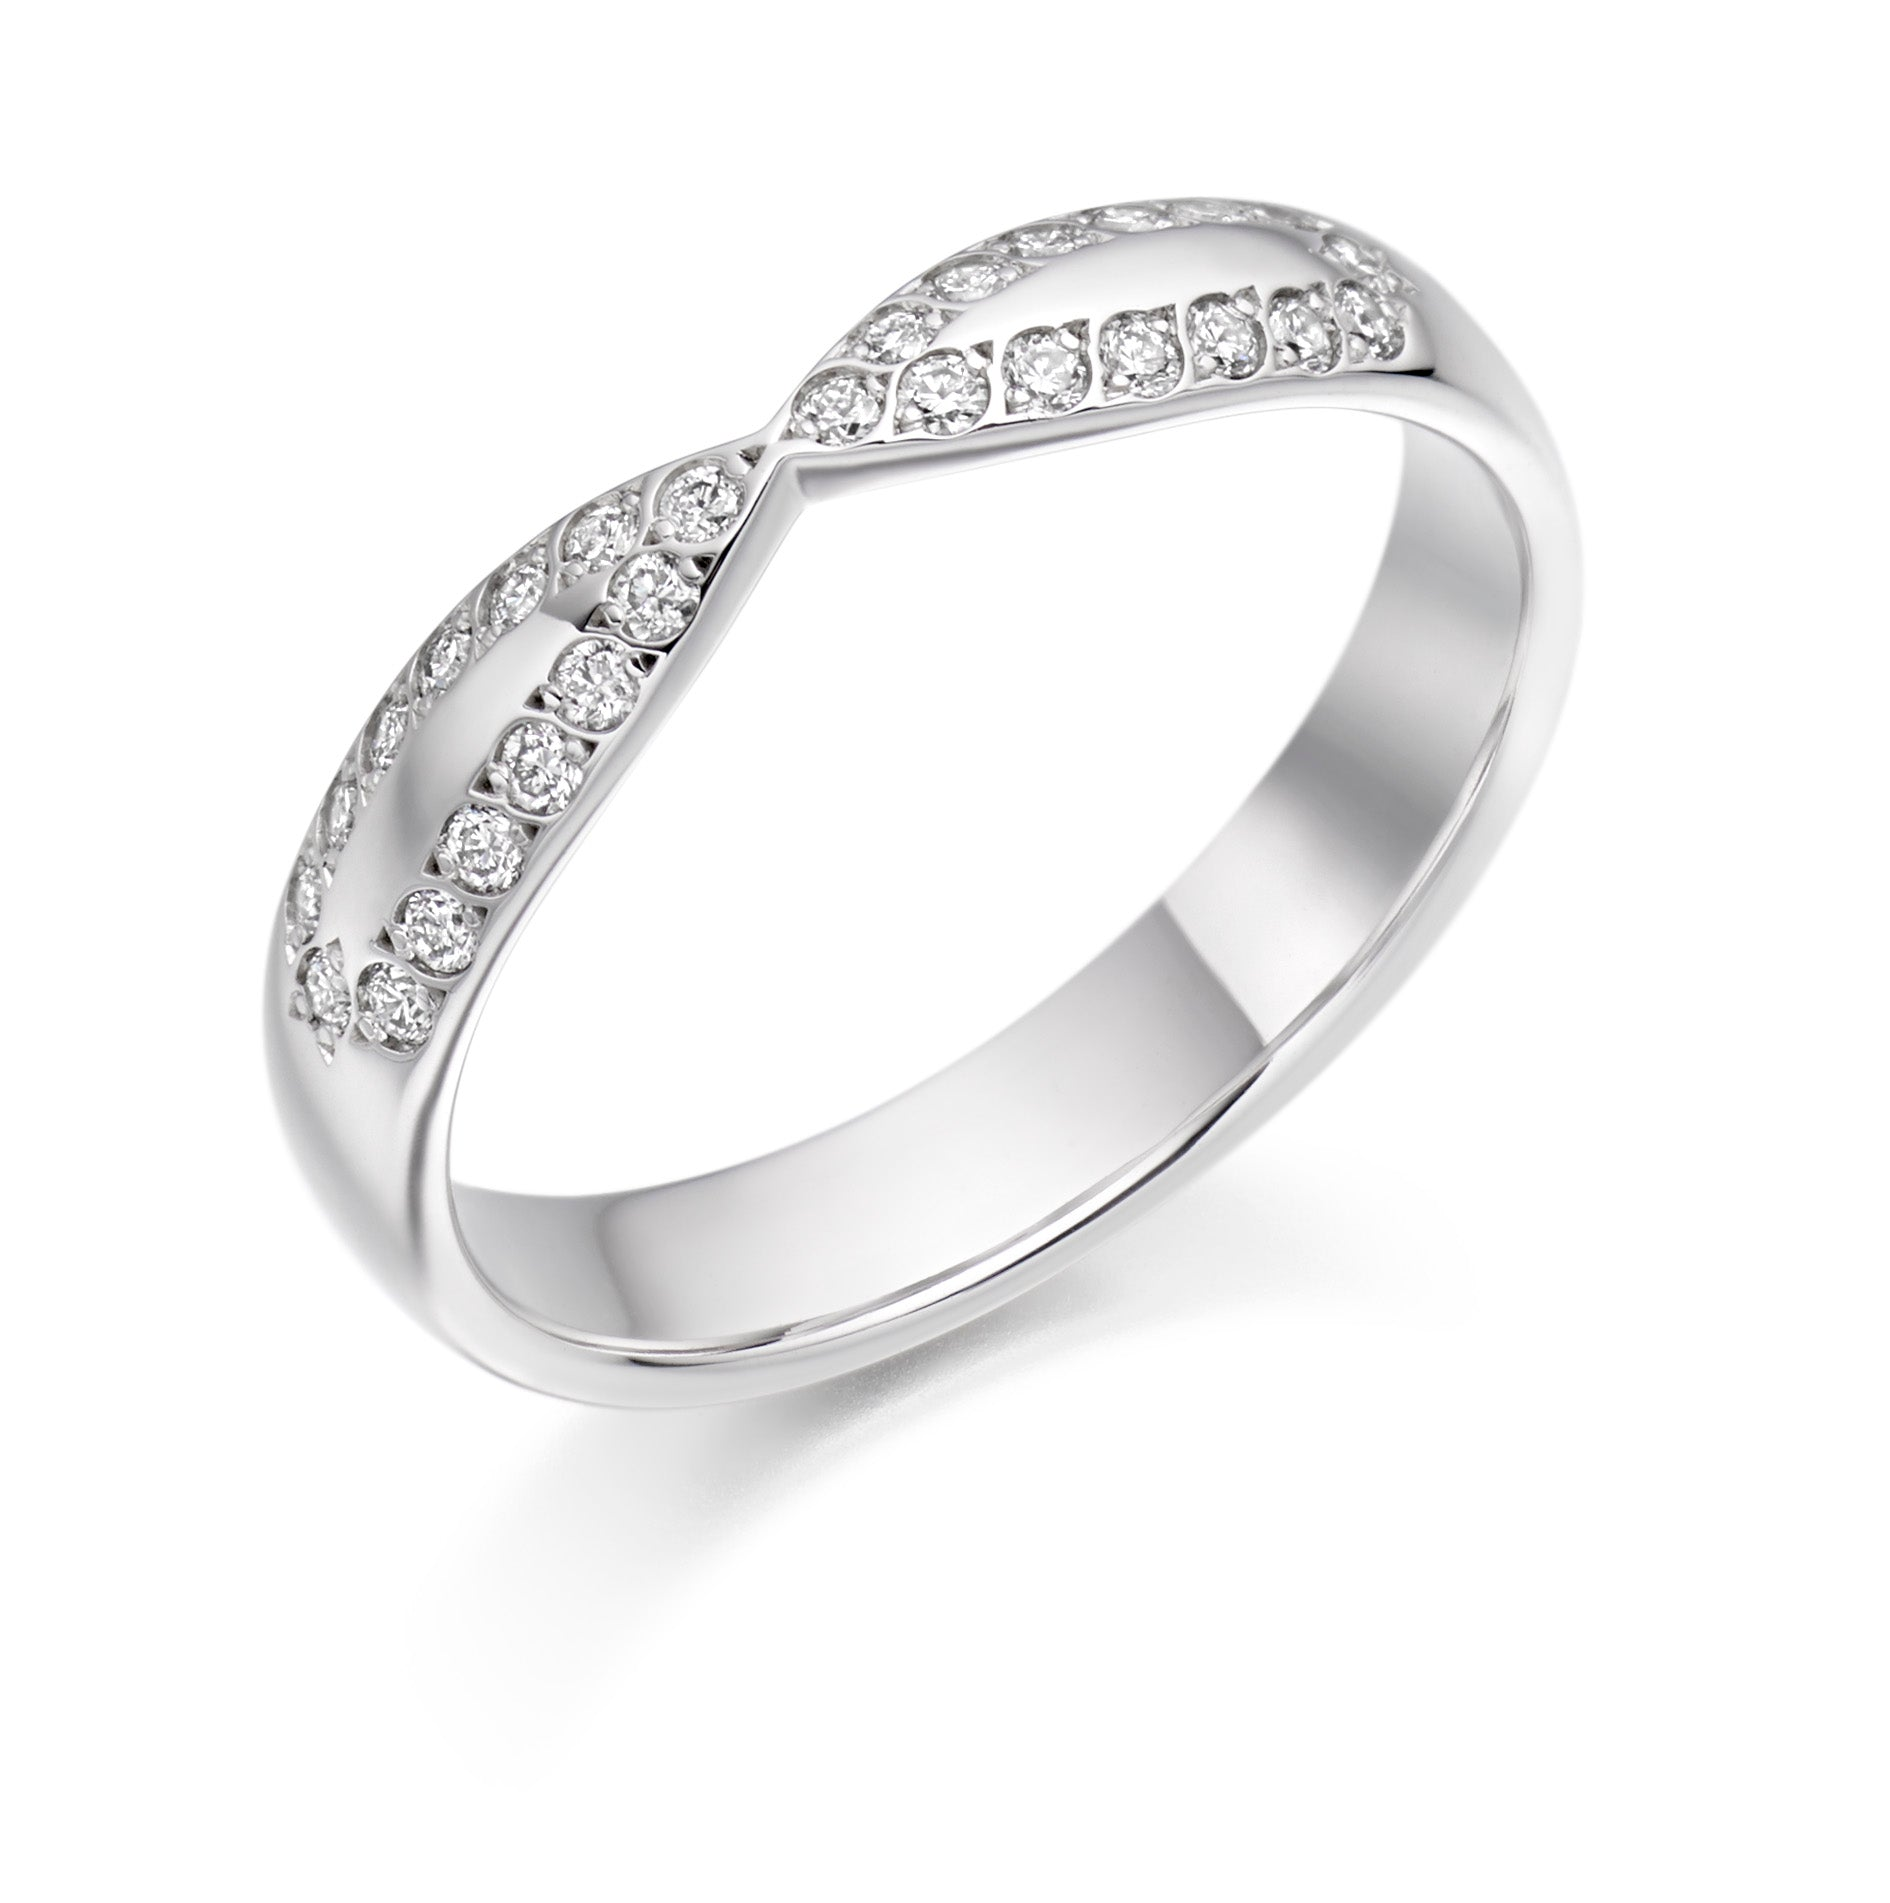 0.25ct Round Brilliant Cut Diamonds Curved and Shaped- Eternity Ring - (Home Try-On)